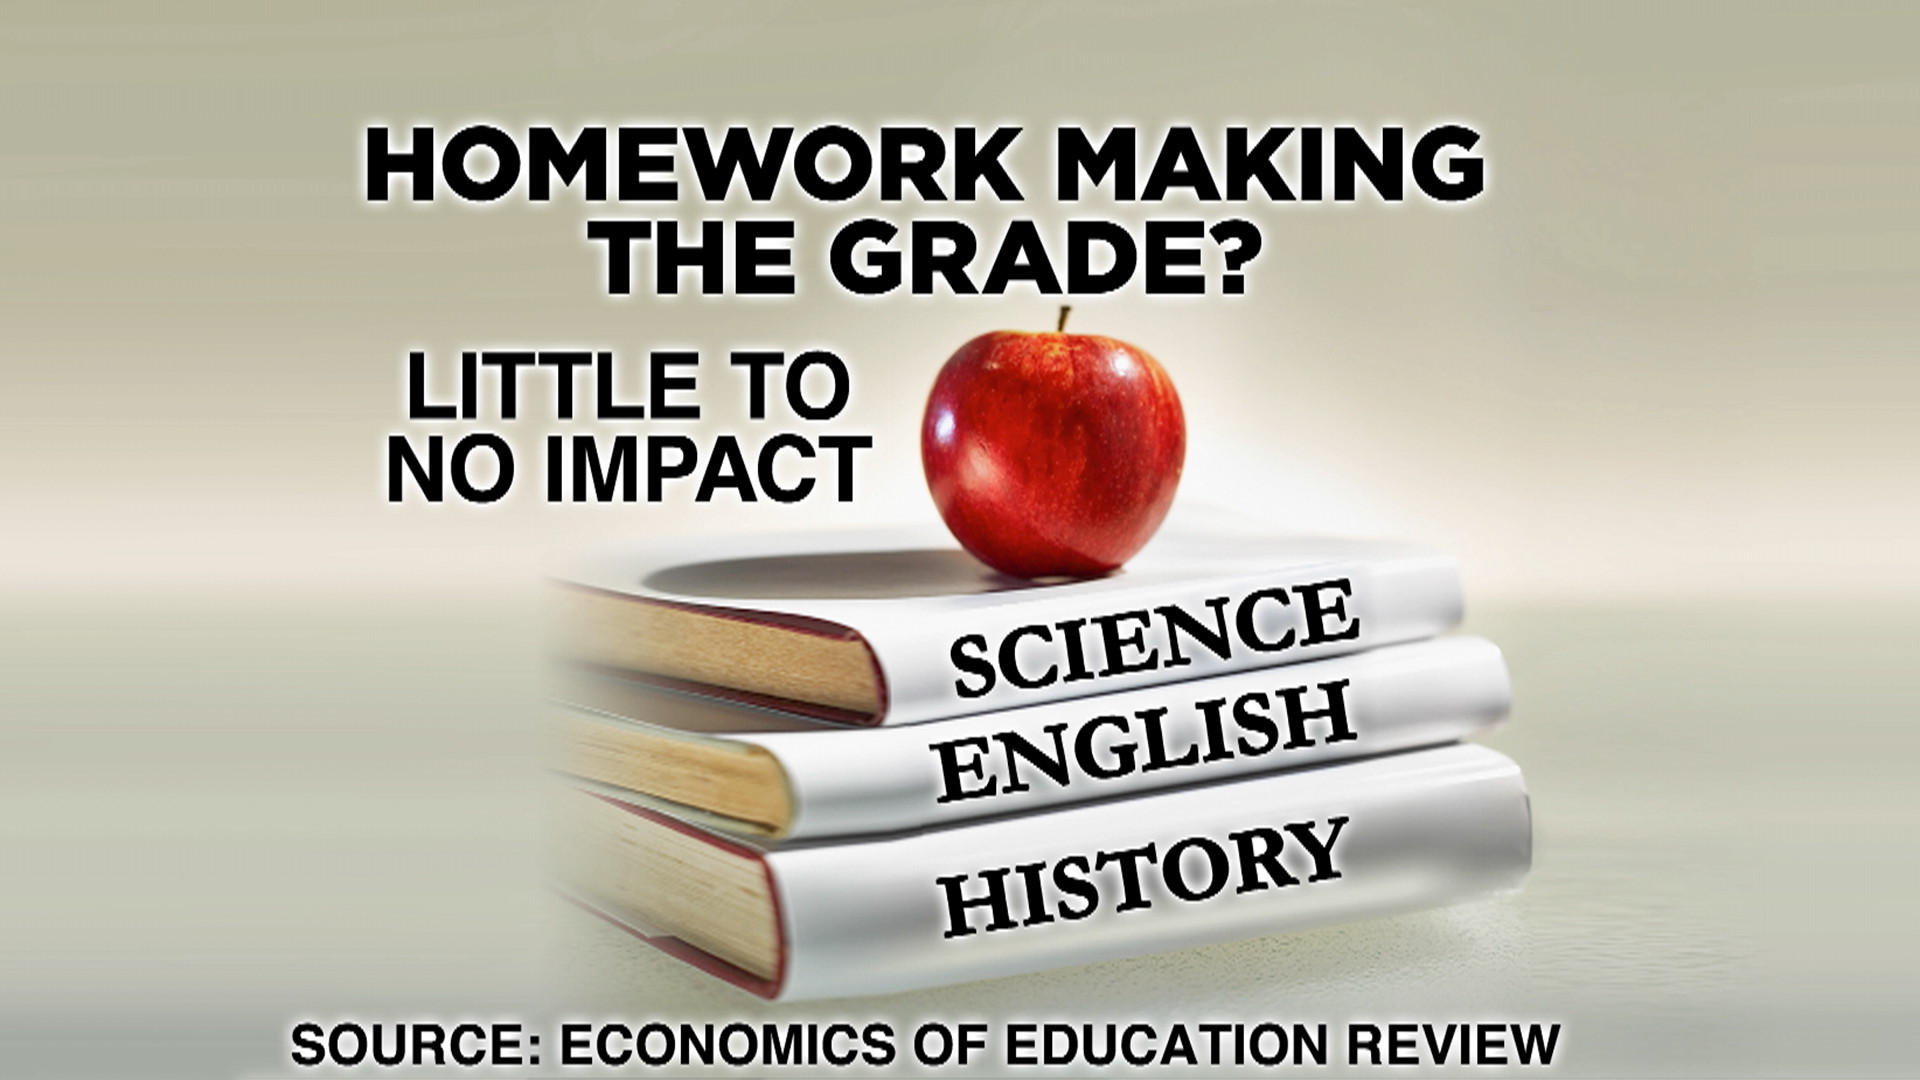 Homework harmful or helpful